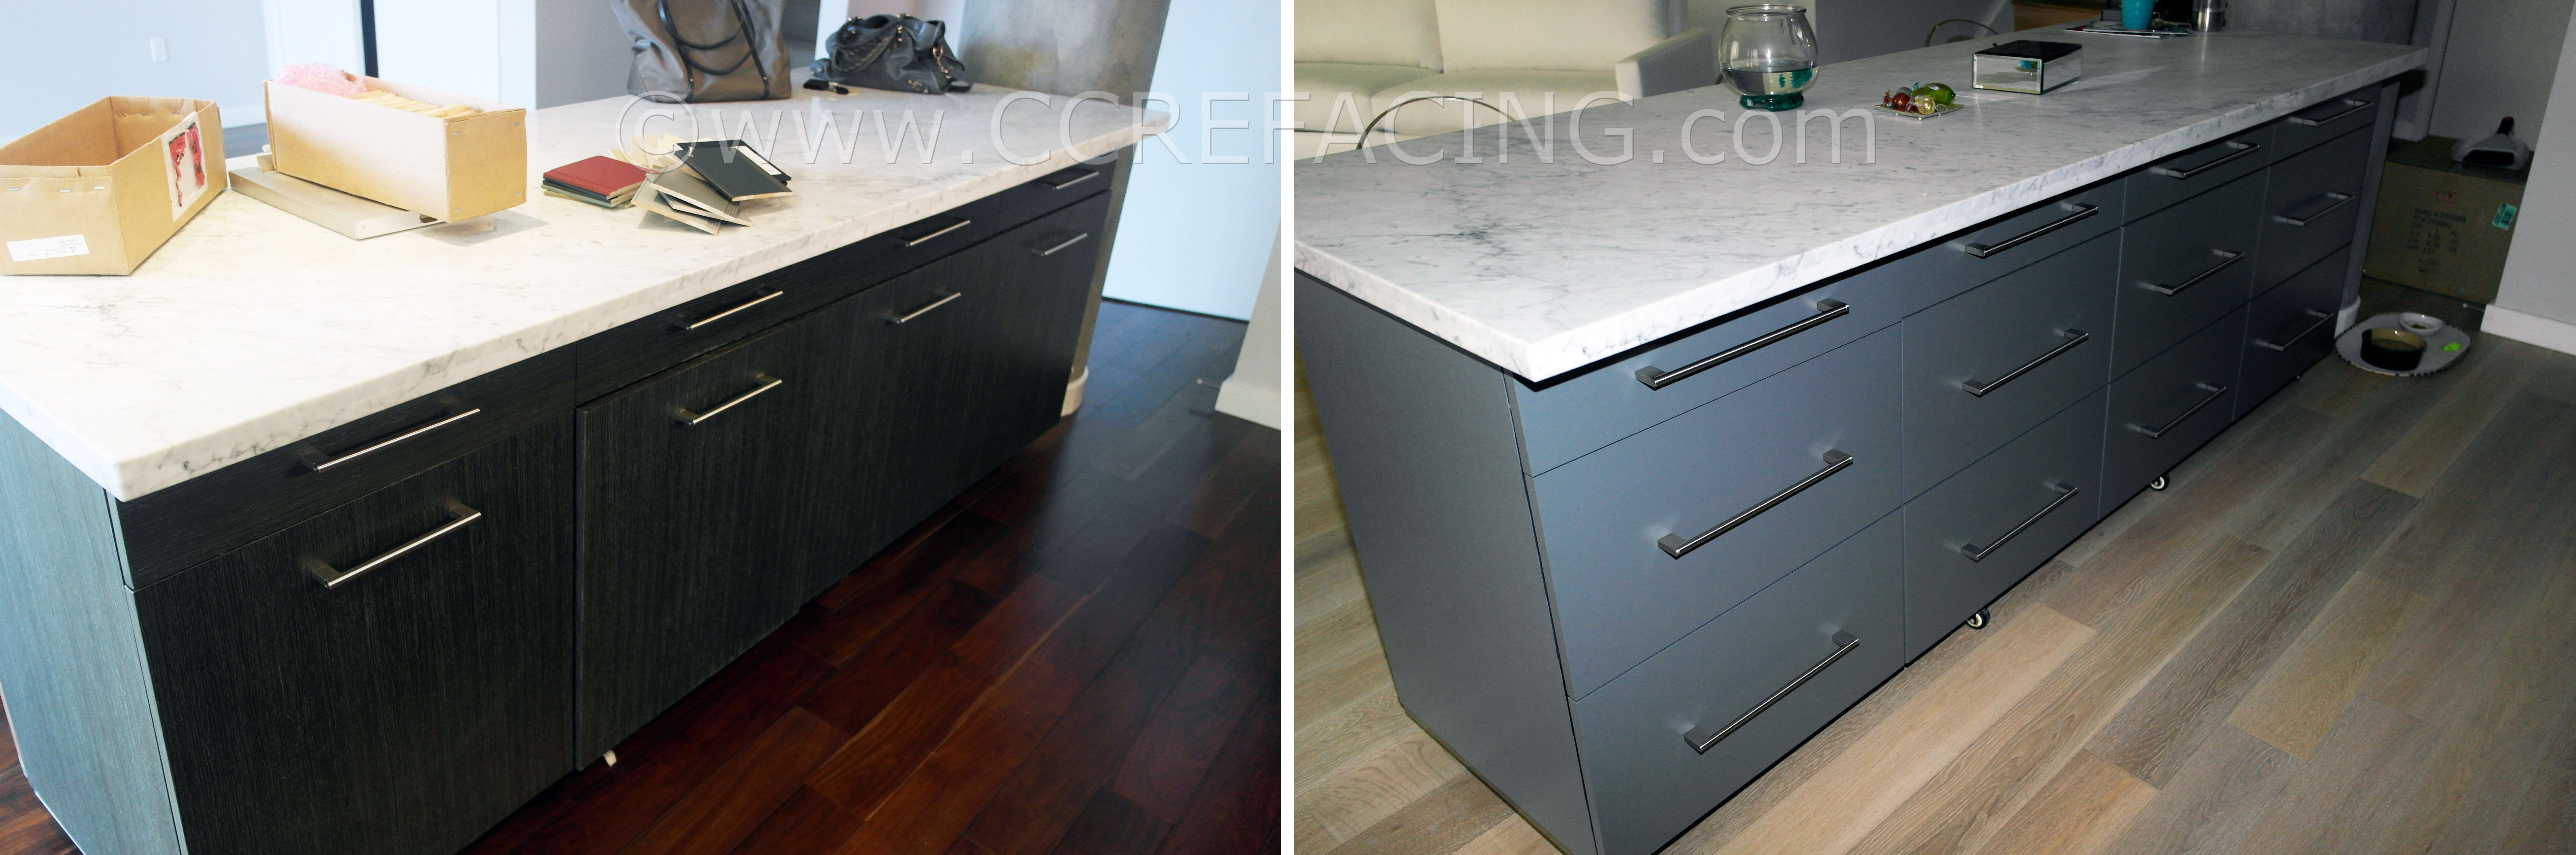 San Bruno cabinet reface refacing with Grey